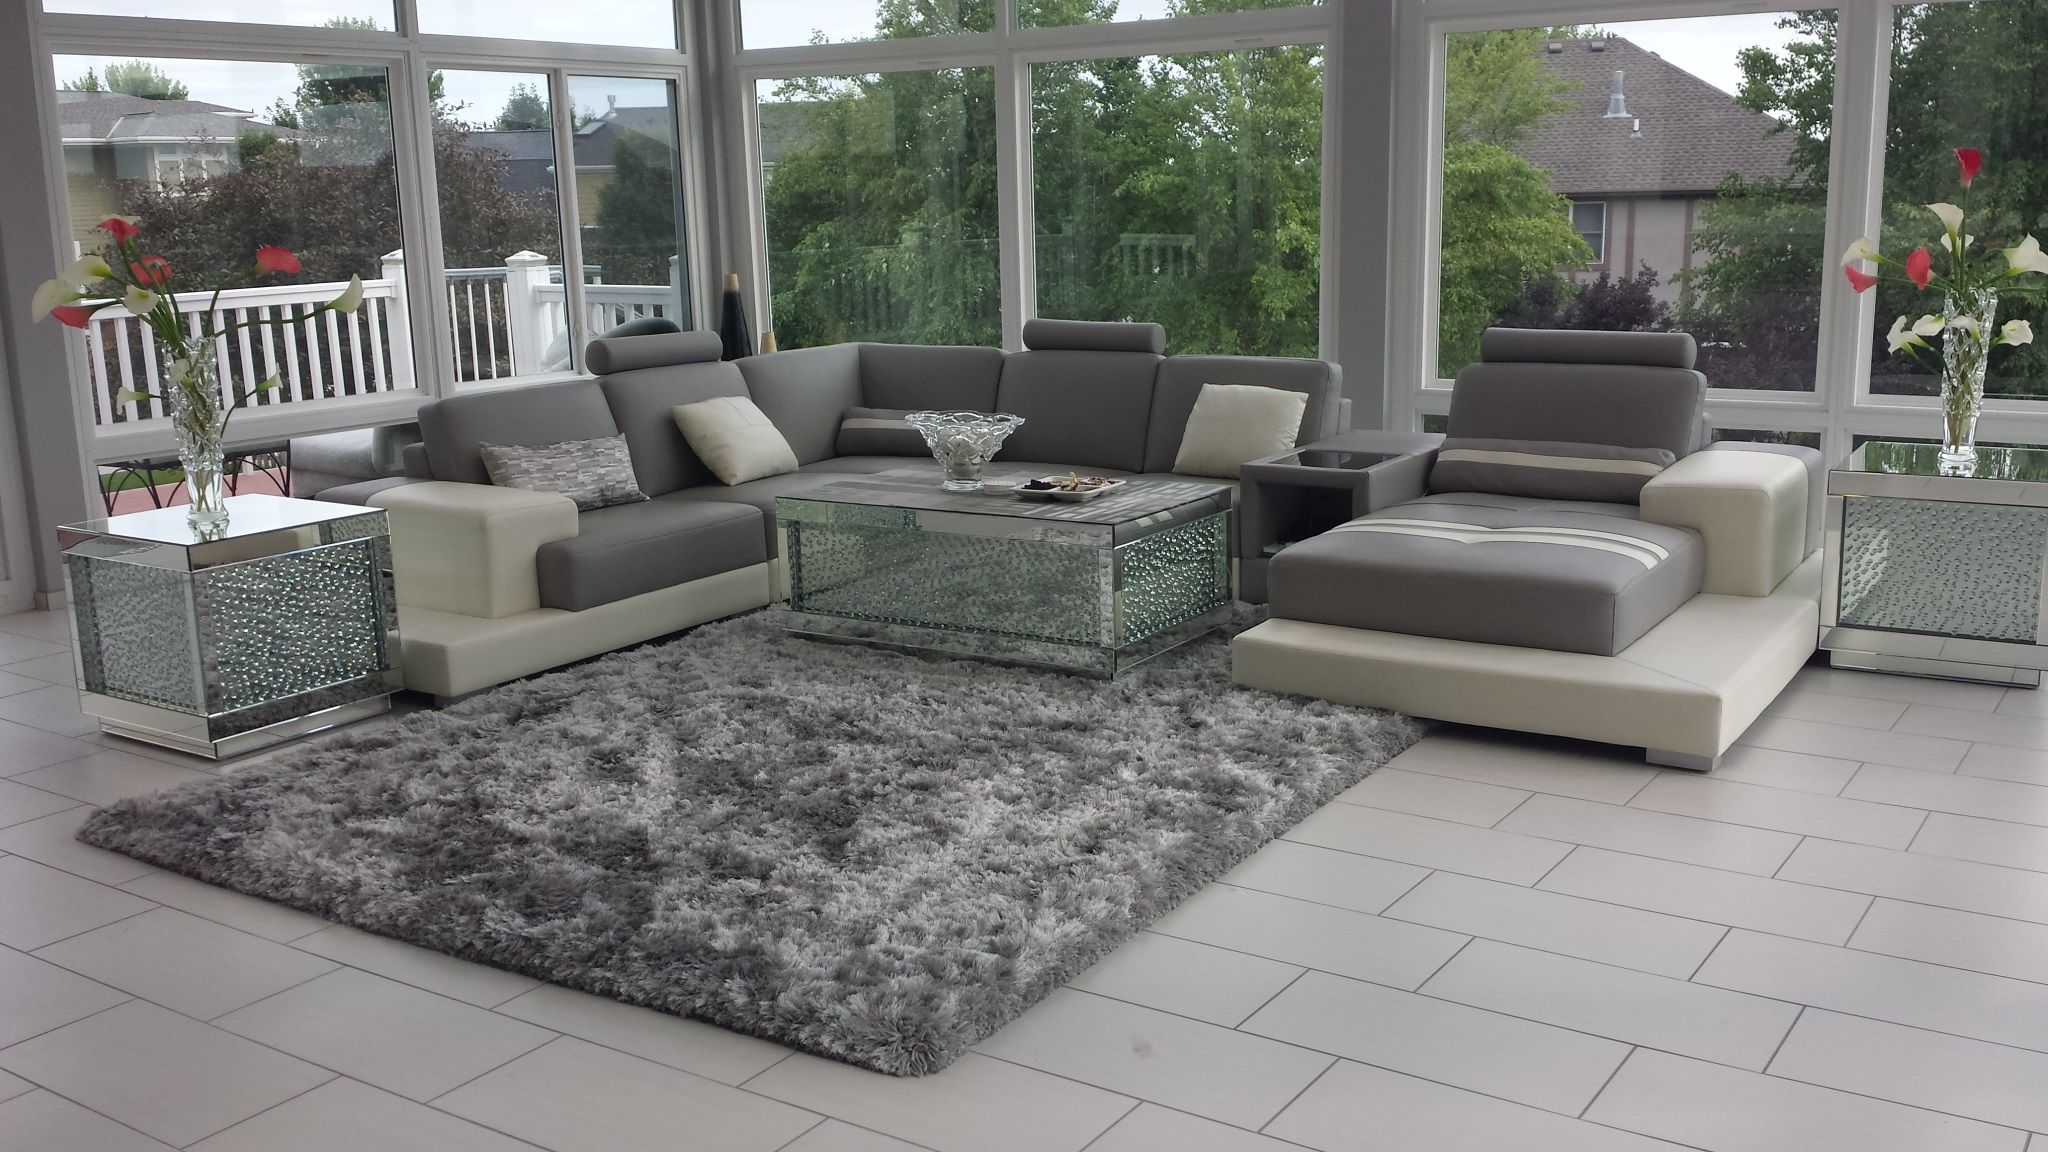 Customer Photos - Sofas | Opulentitems.com